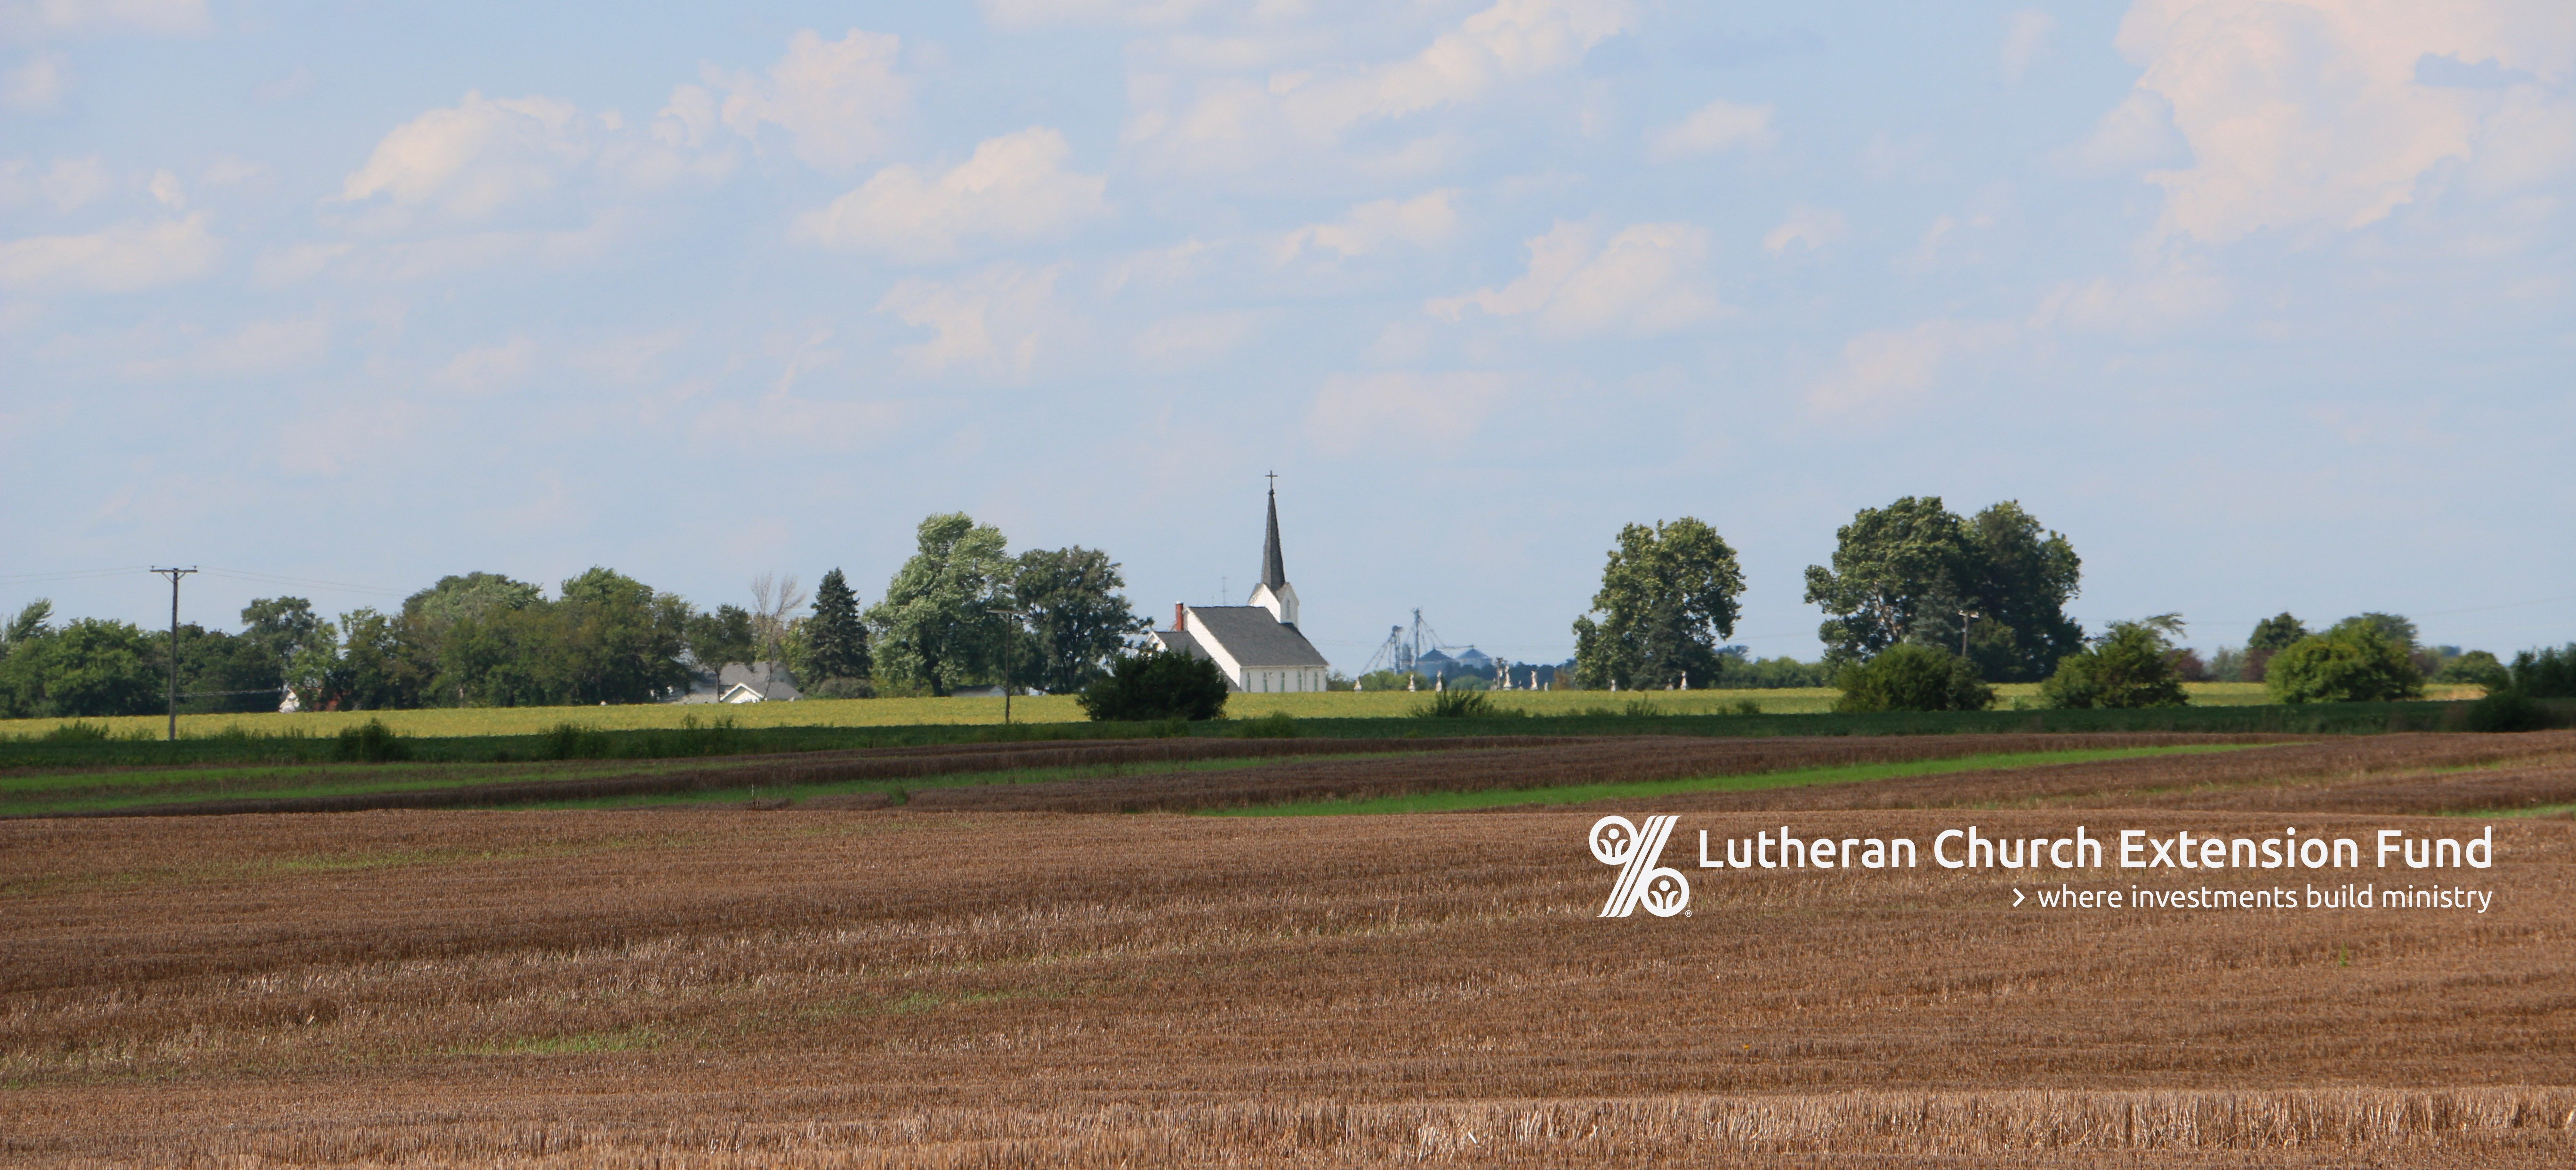 Lutheran Church Extension Fund, LCEF | LinkedIn